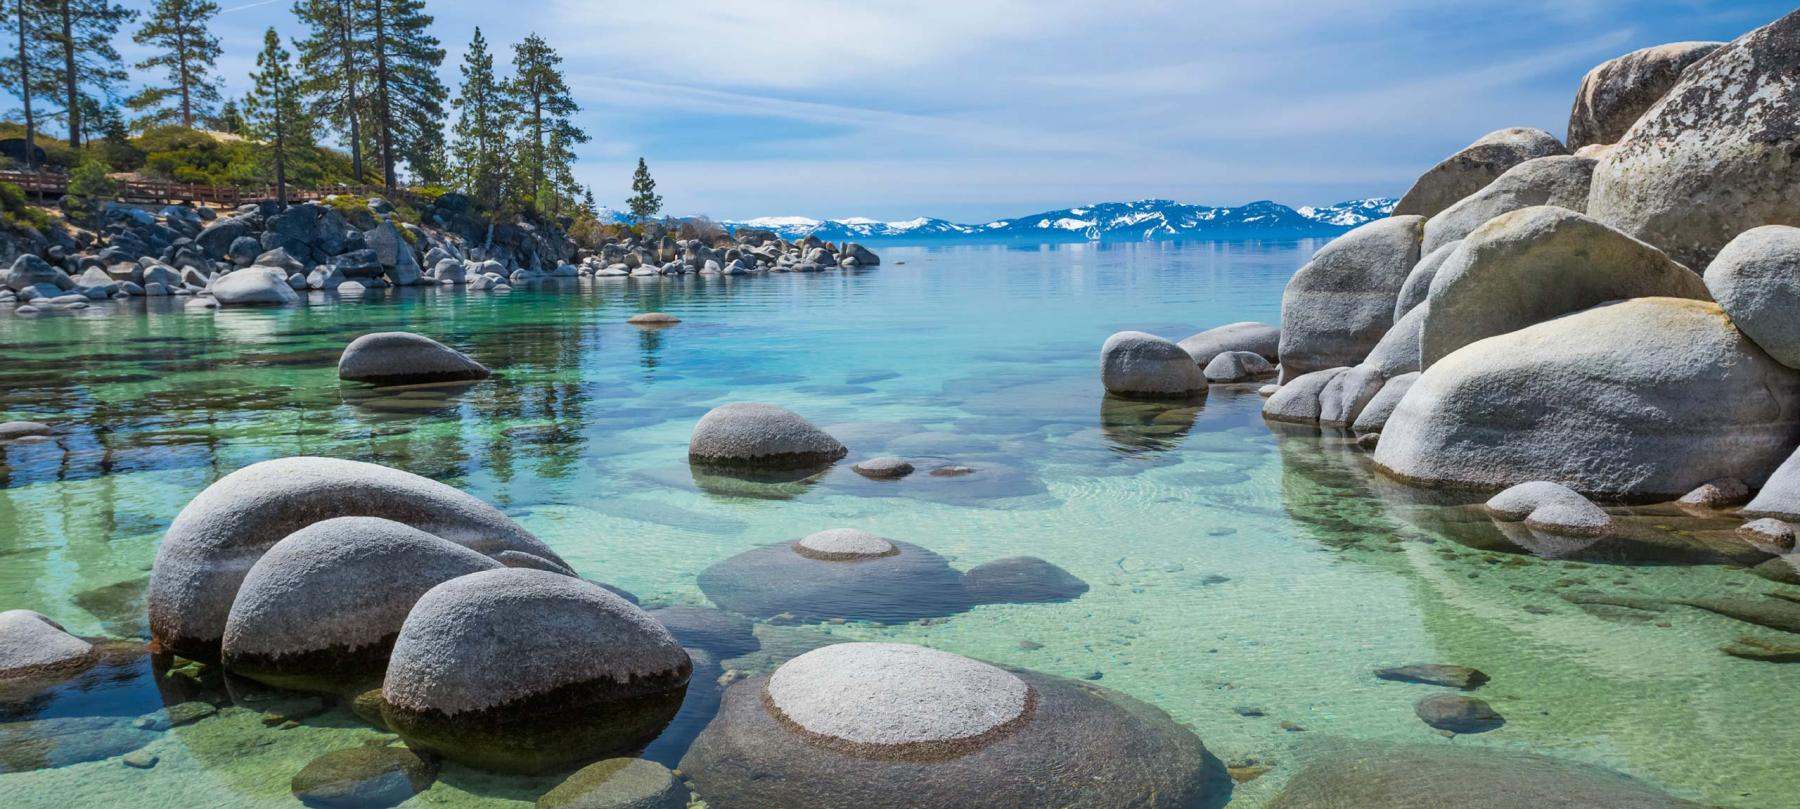 Lake Tahoe Placeholder